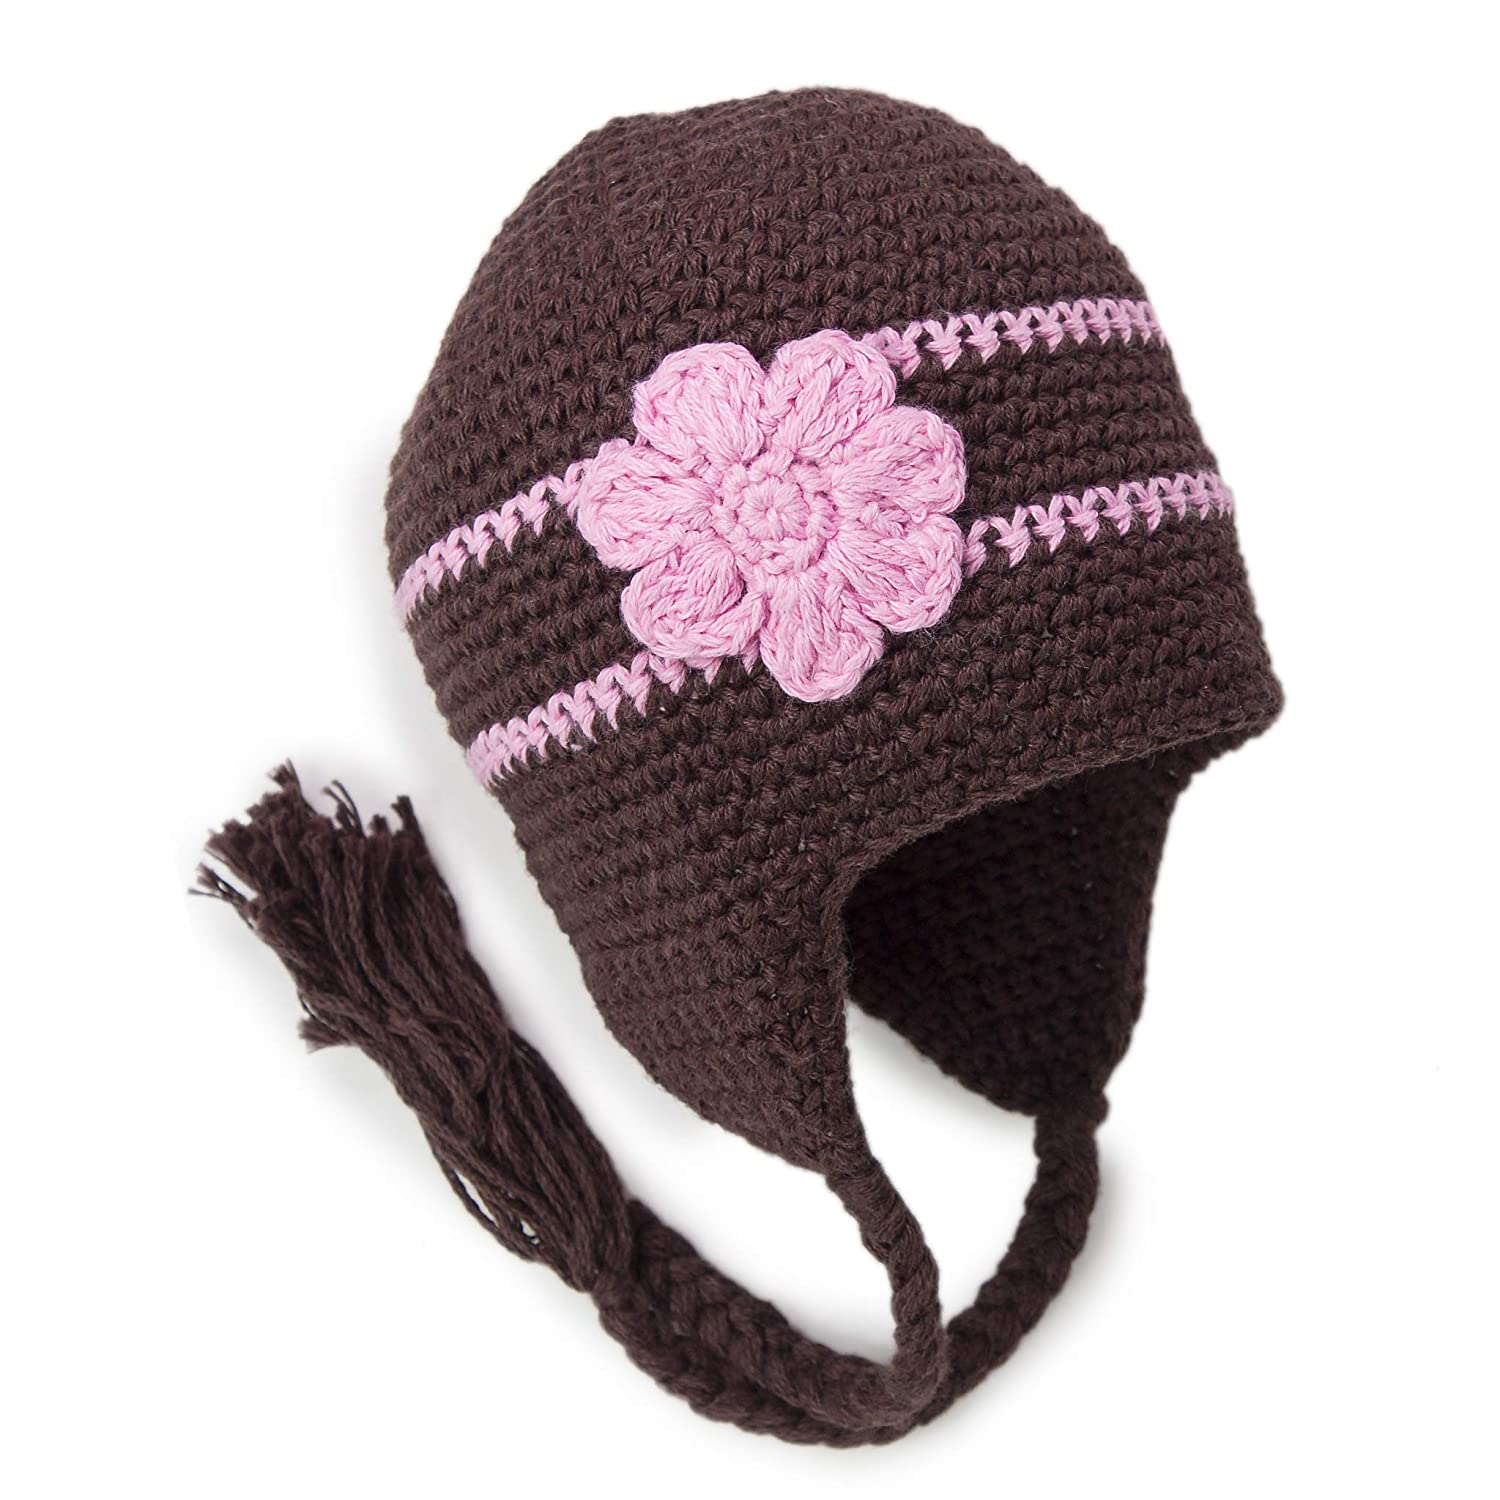 Blossom Handcrafted Hat 3-10 Years